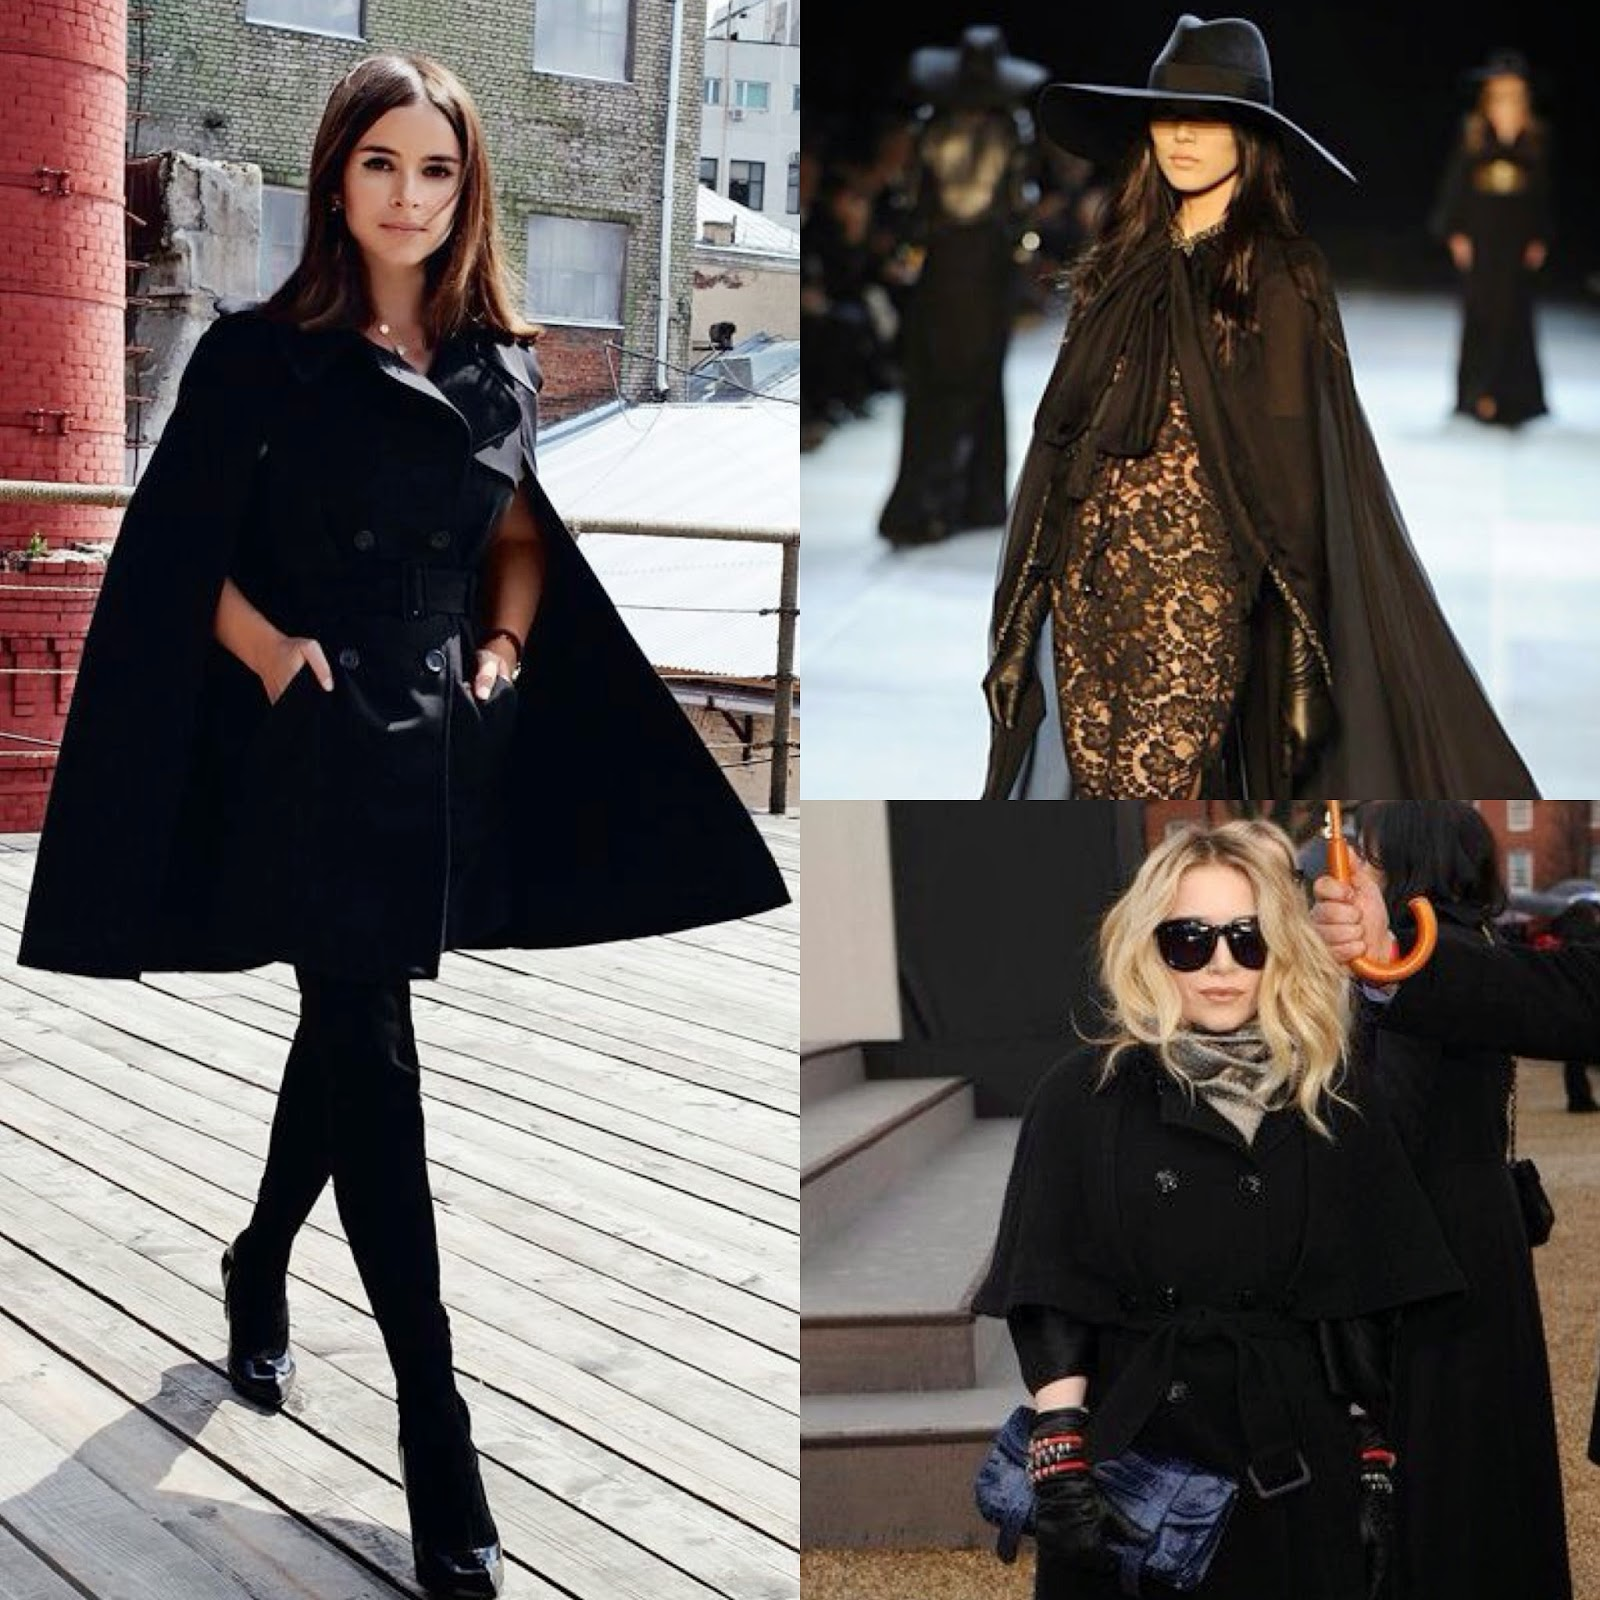 Inpsiration, Fall Fashion, Inpiration Black Cape, Black Cape, Black Cape Coat, Inspiration Black Cape Coat, Cape, Cape Coat, Fall Inpiration,